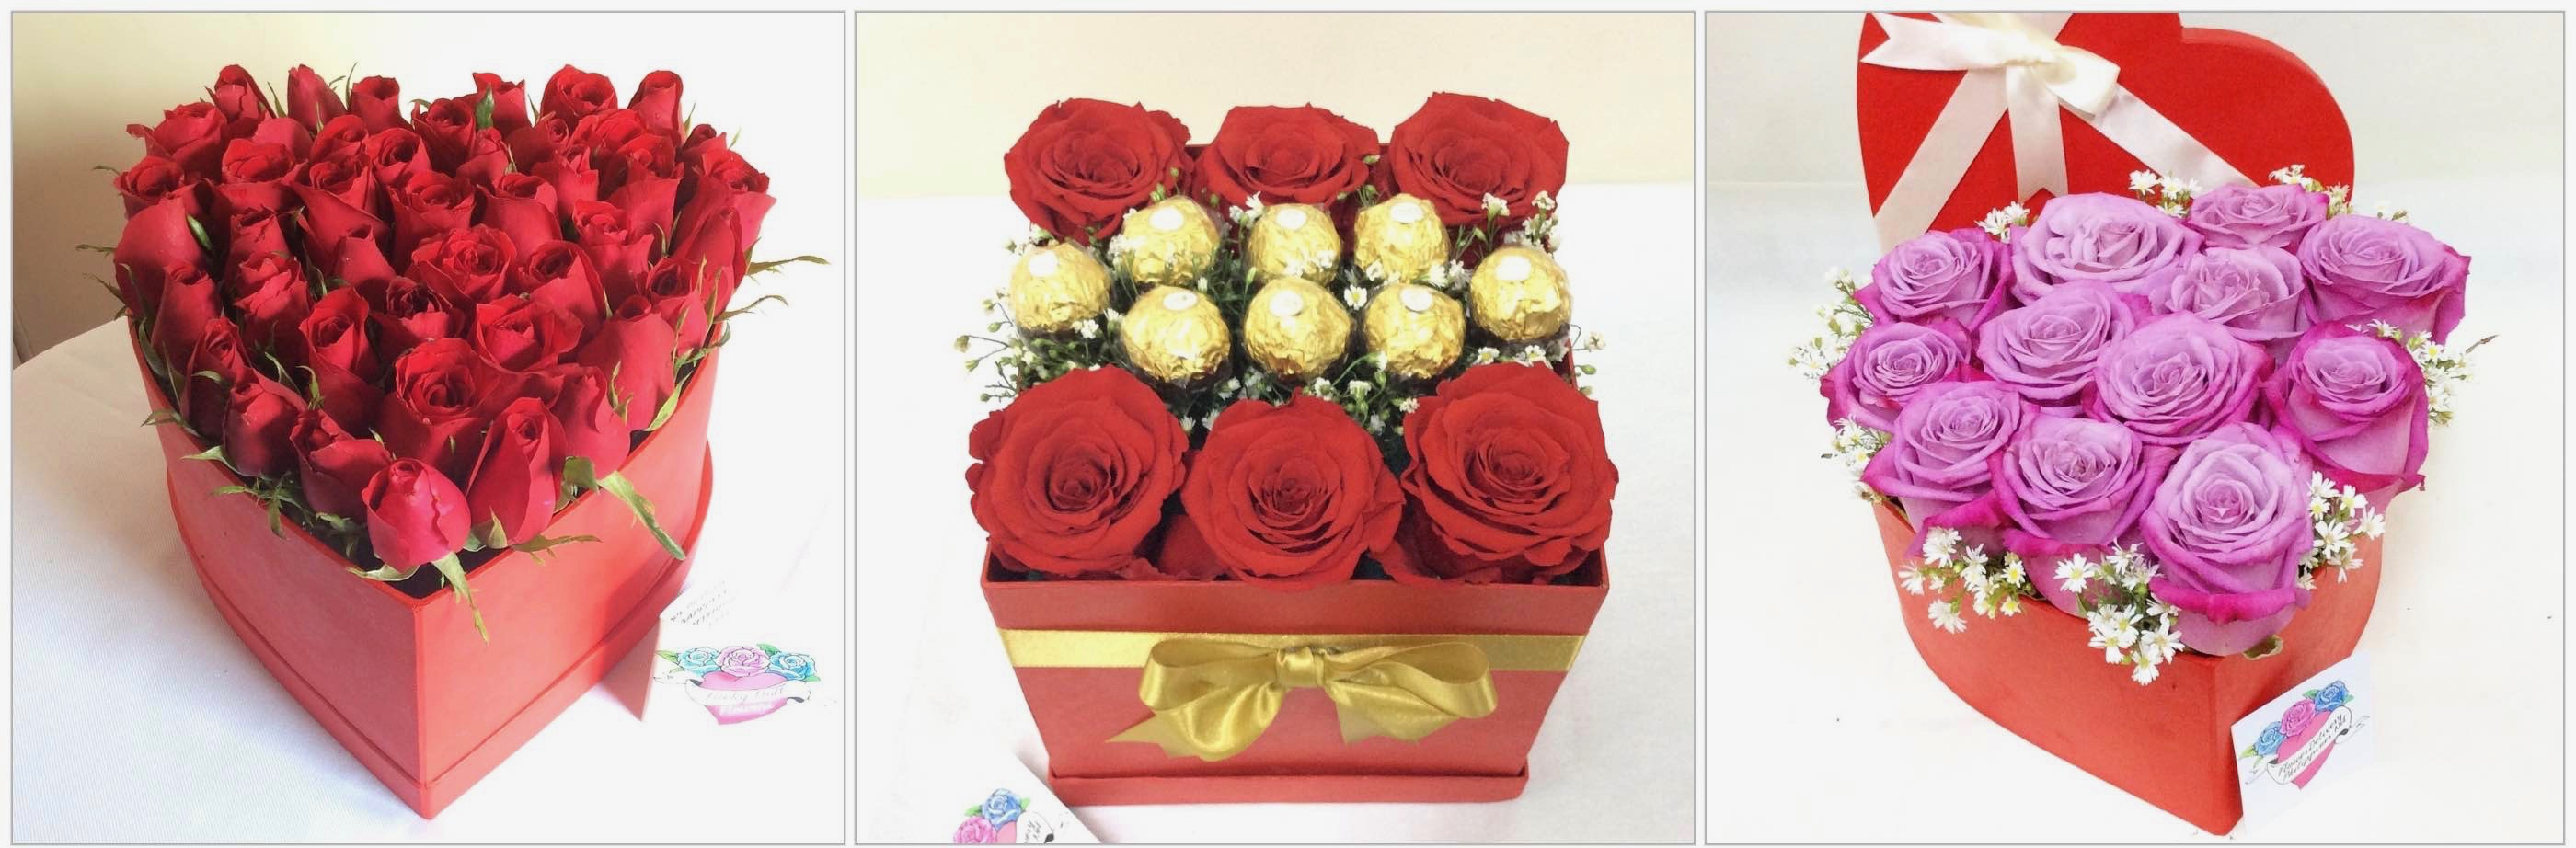 Boxed roses delivery Philippines